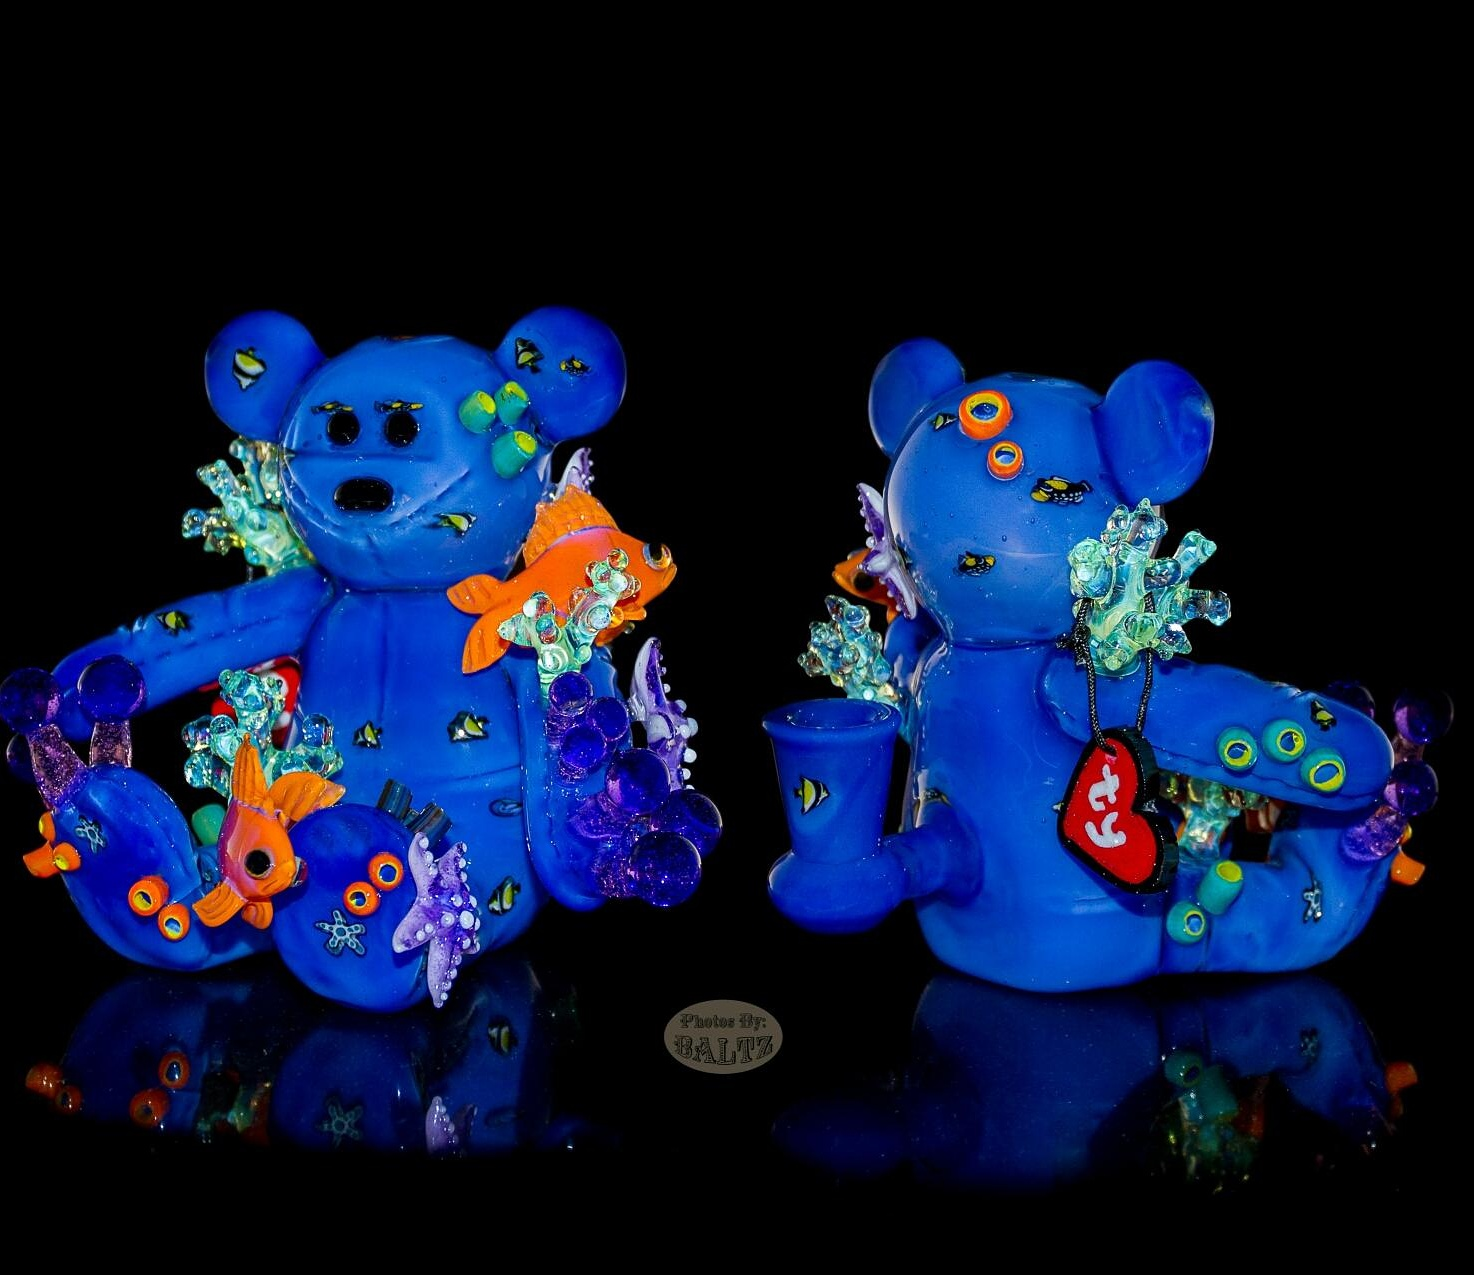 Glasshopper: Aquatic Beanie Bear - I stayed at Robert's place in New Jersey and we had a blast making this piece. He explores a wide swath of nature themes in his milli work and went the extra mile with the use of his fish milli on the body of the bear. I sculpted the anthias and starfish as well as some slyme coral. It was great to be a collaborator on the bear series that robert has been building. Photo by Chris Baltz.